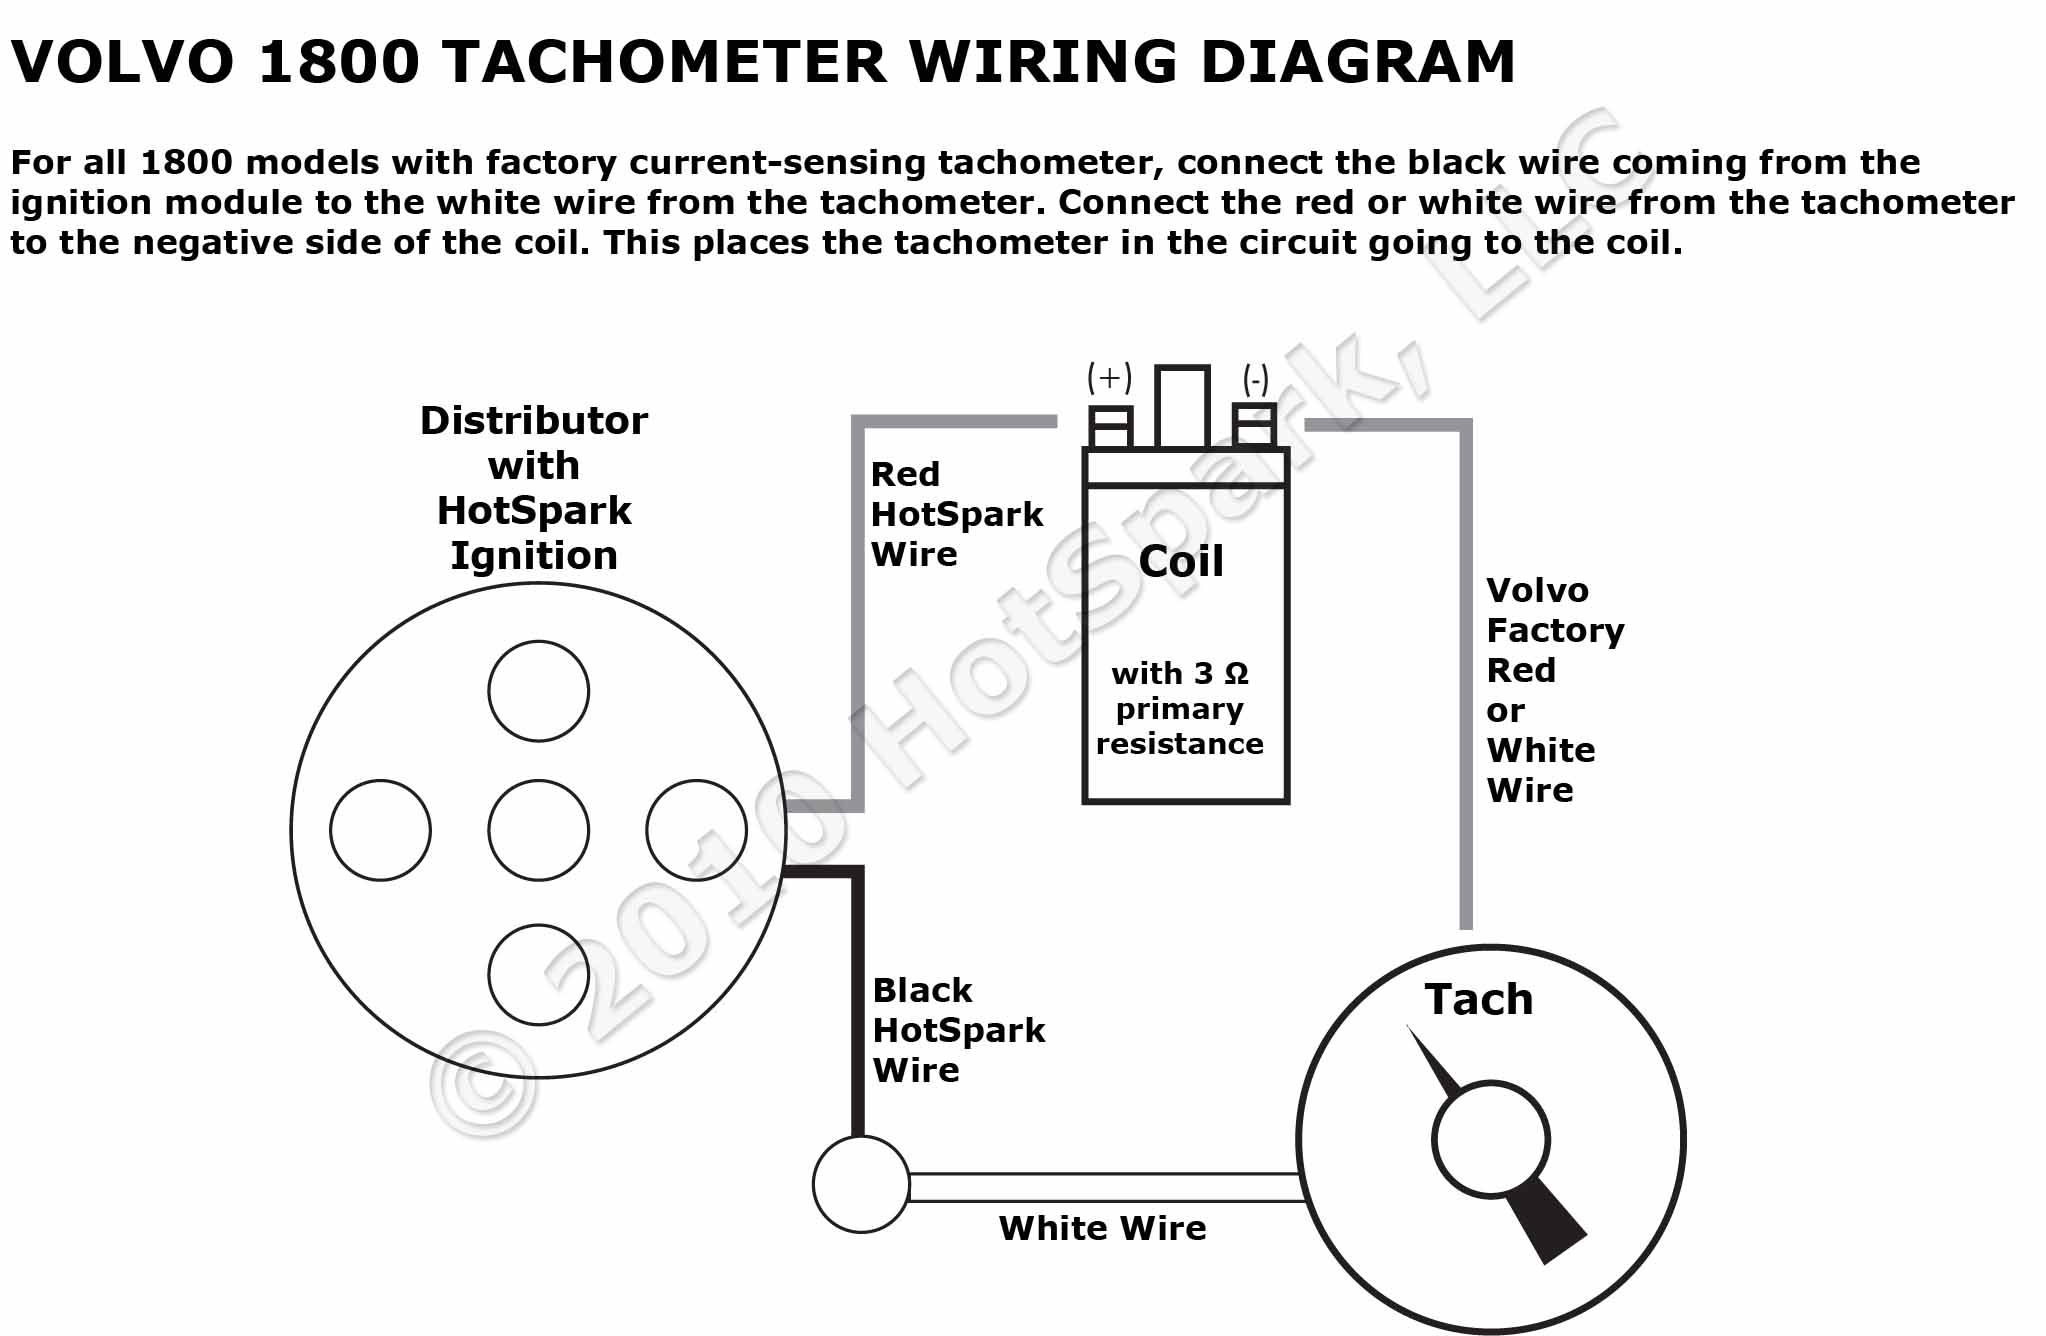 faria sel tachometer wiring all about repair and wiring collections faria sel tachometer wiring tachometer wiring diagrams nilzanet volvo 1800 tachometer and hot spark wiring